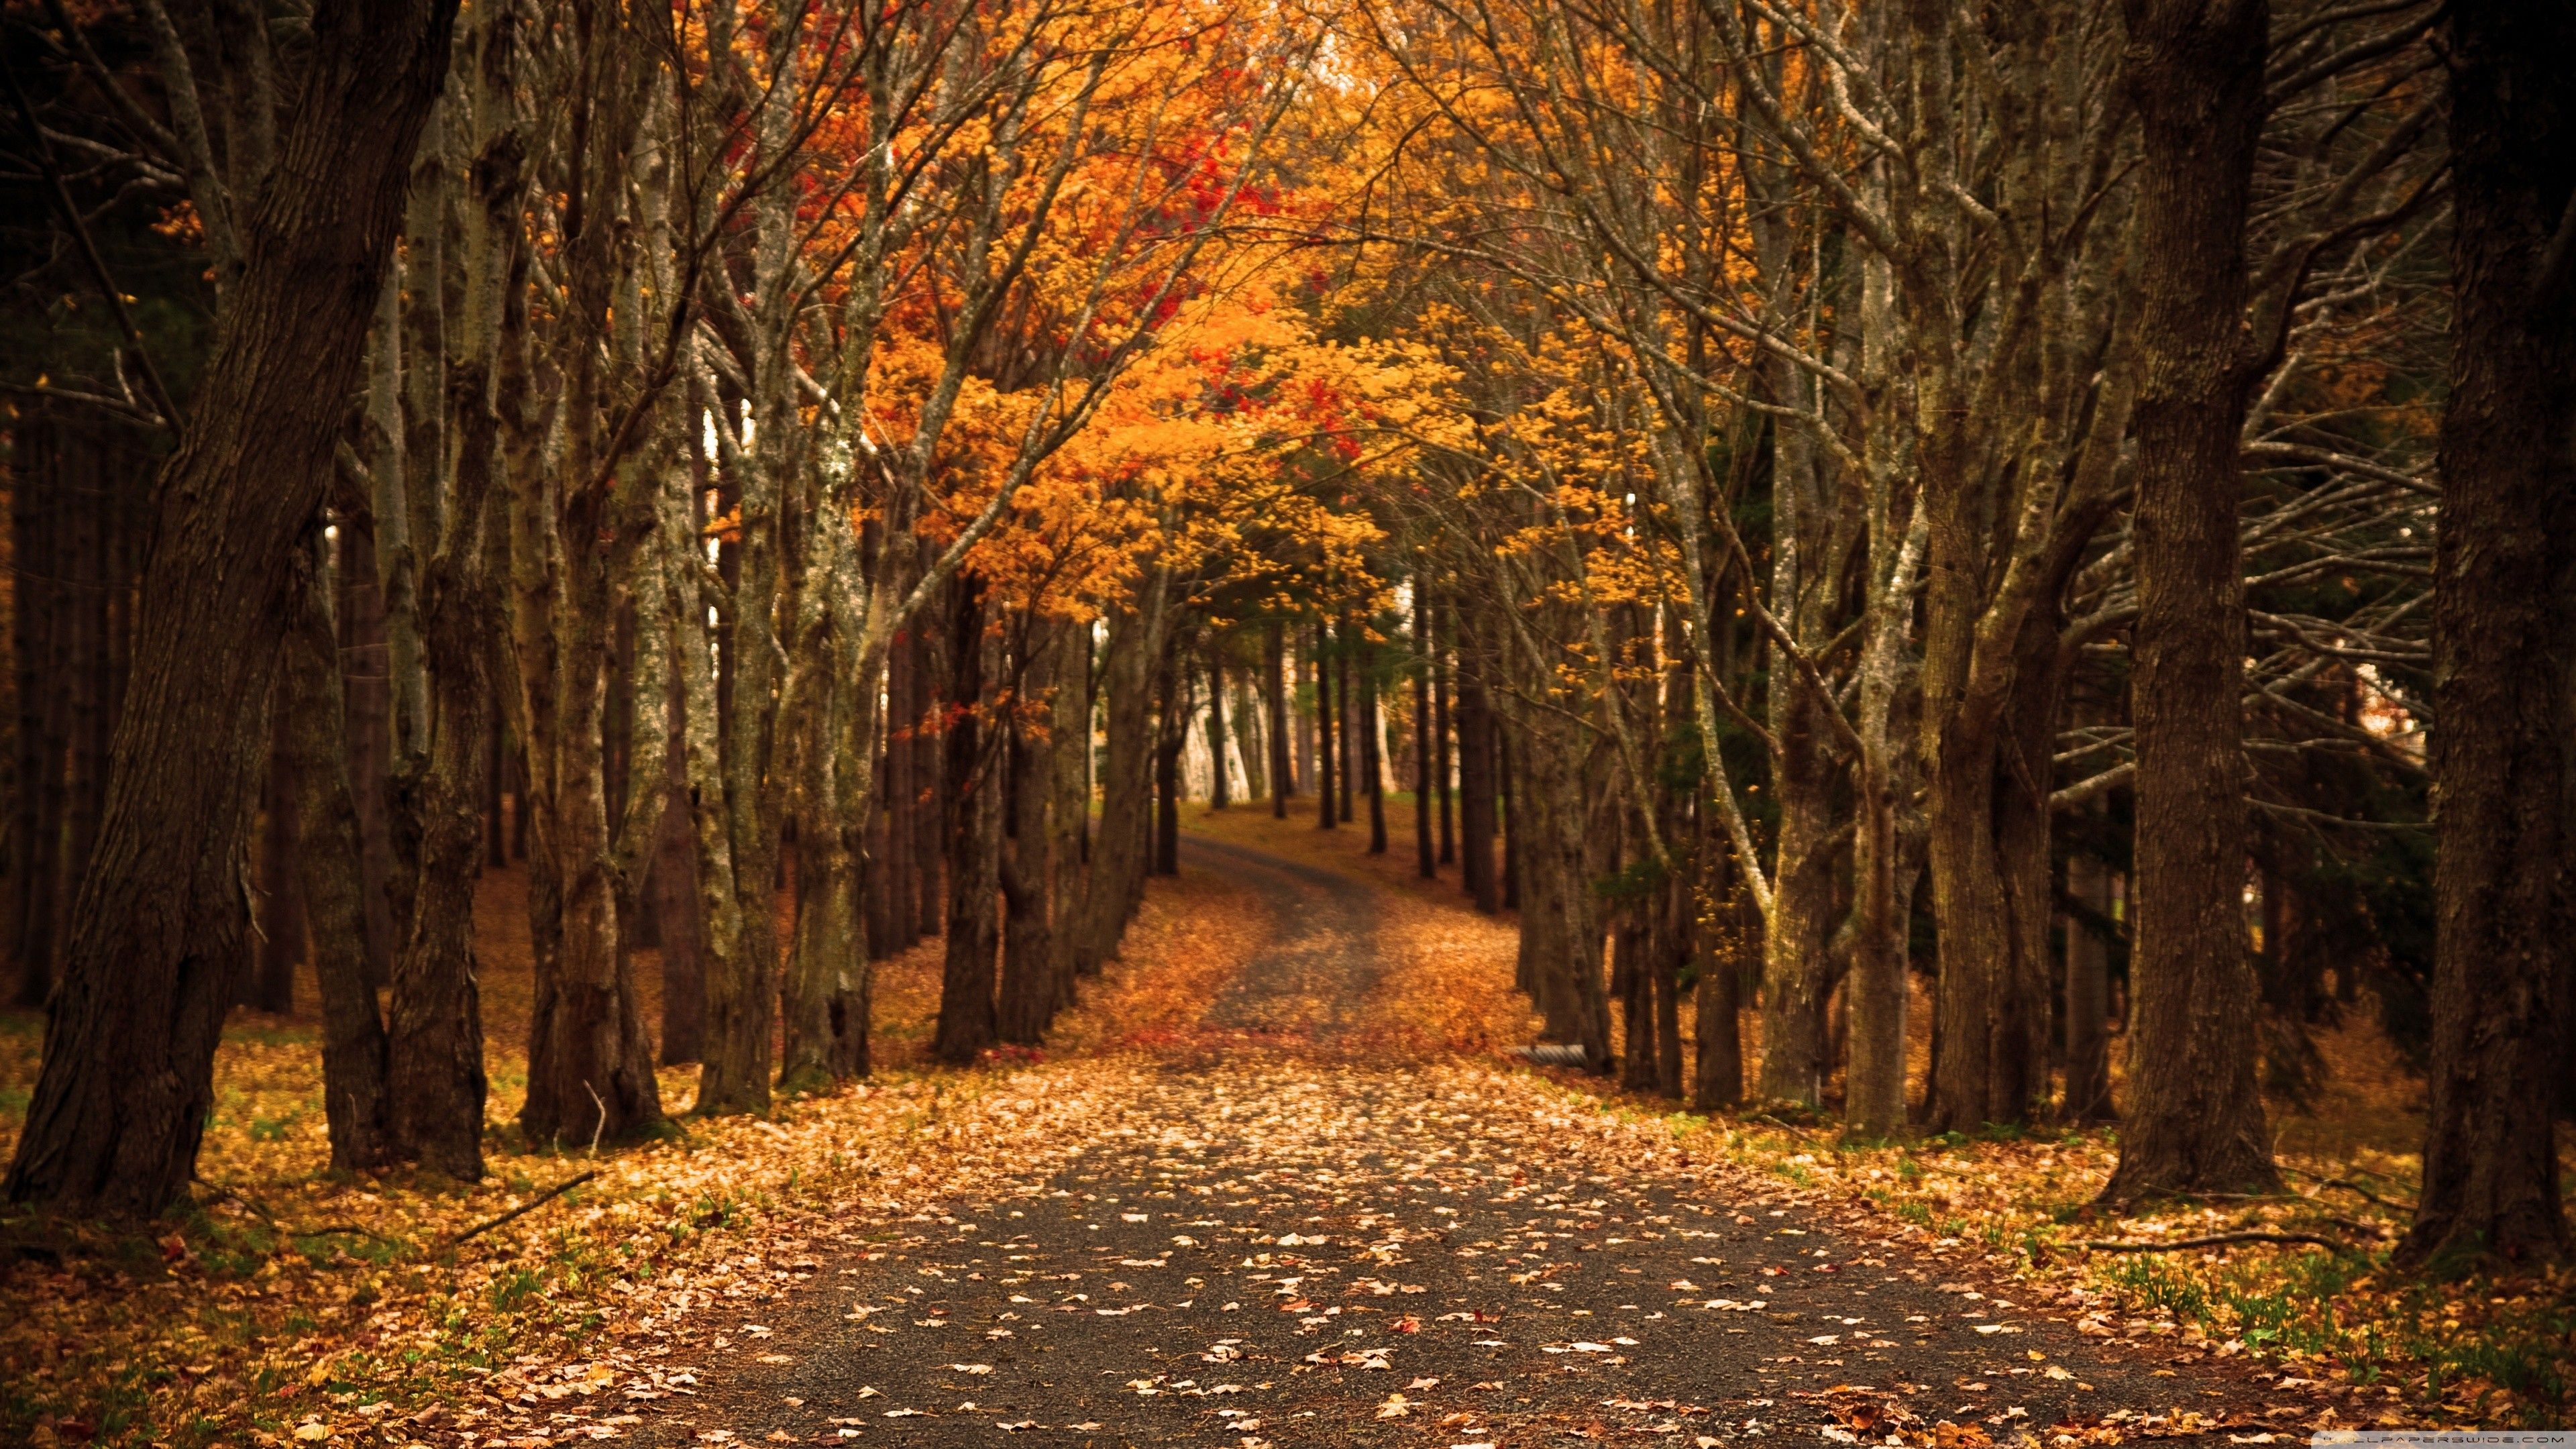 River forest Autumn Wallpapers Awesome Hd Autumn Wallpaper ·â ...